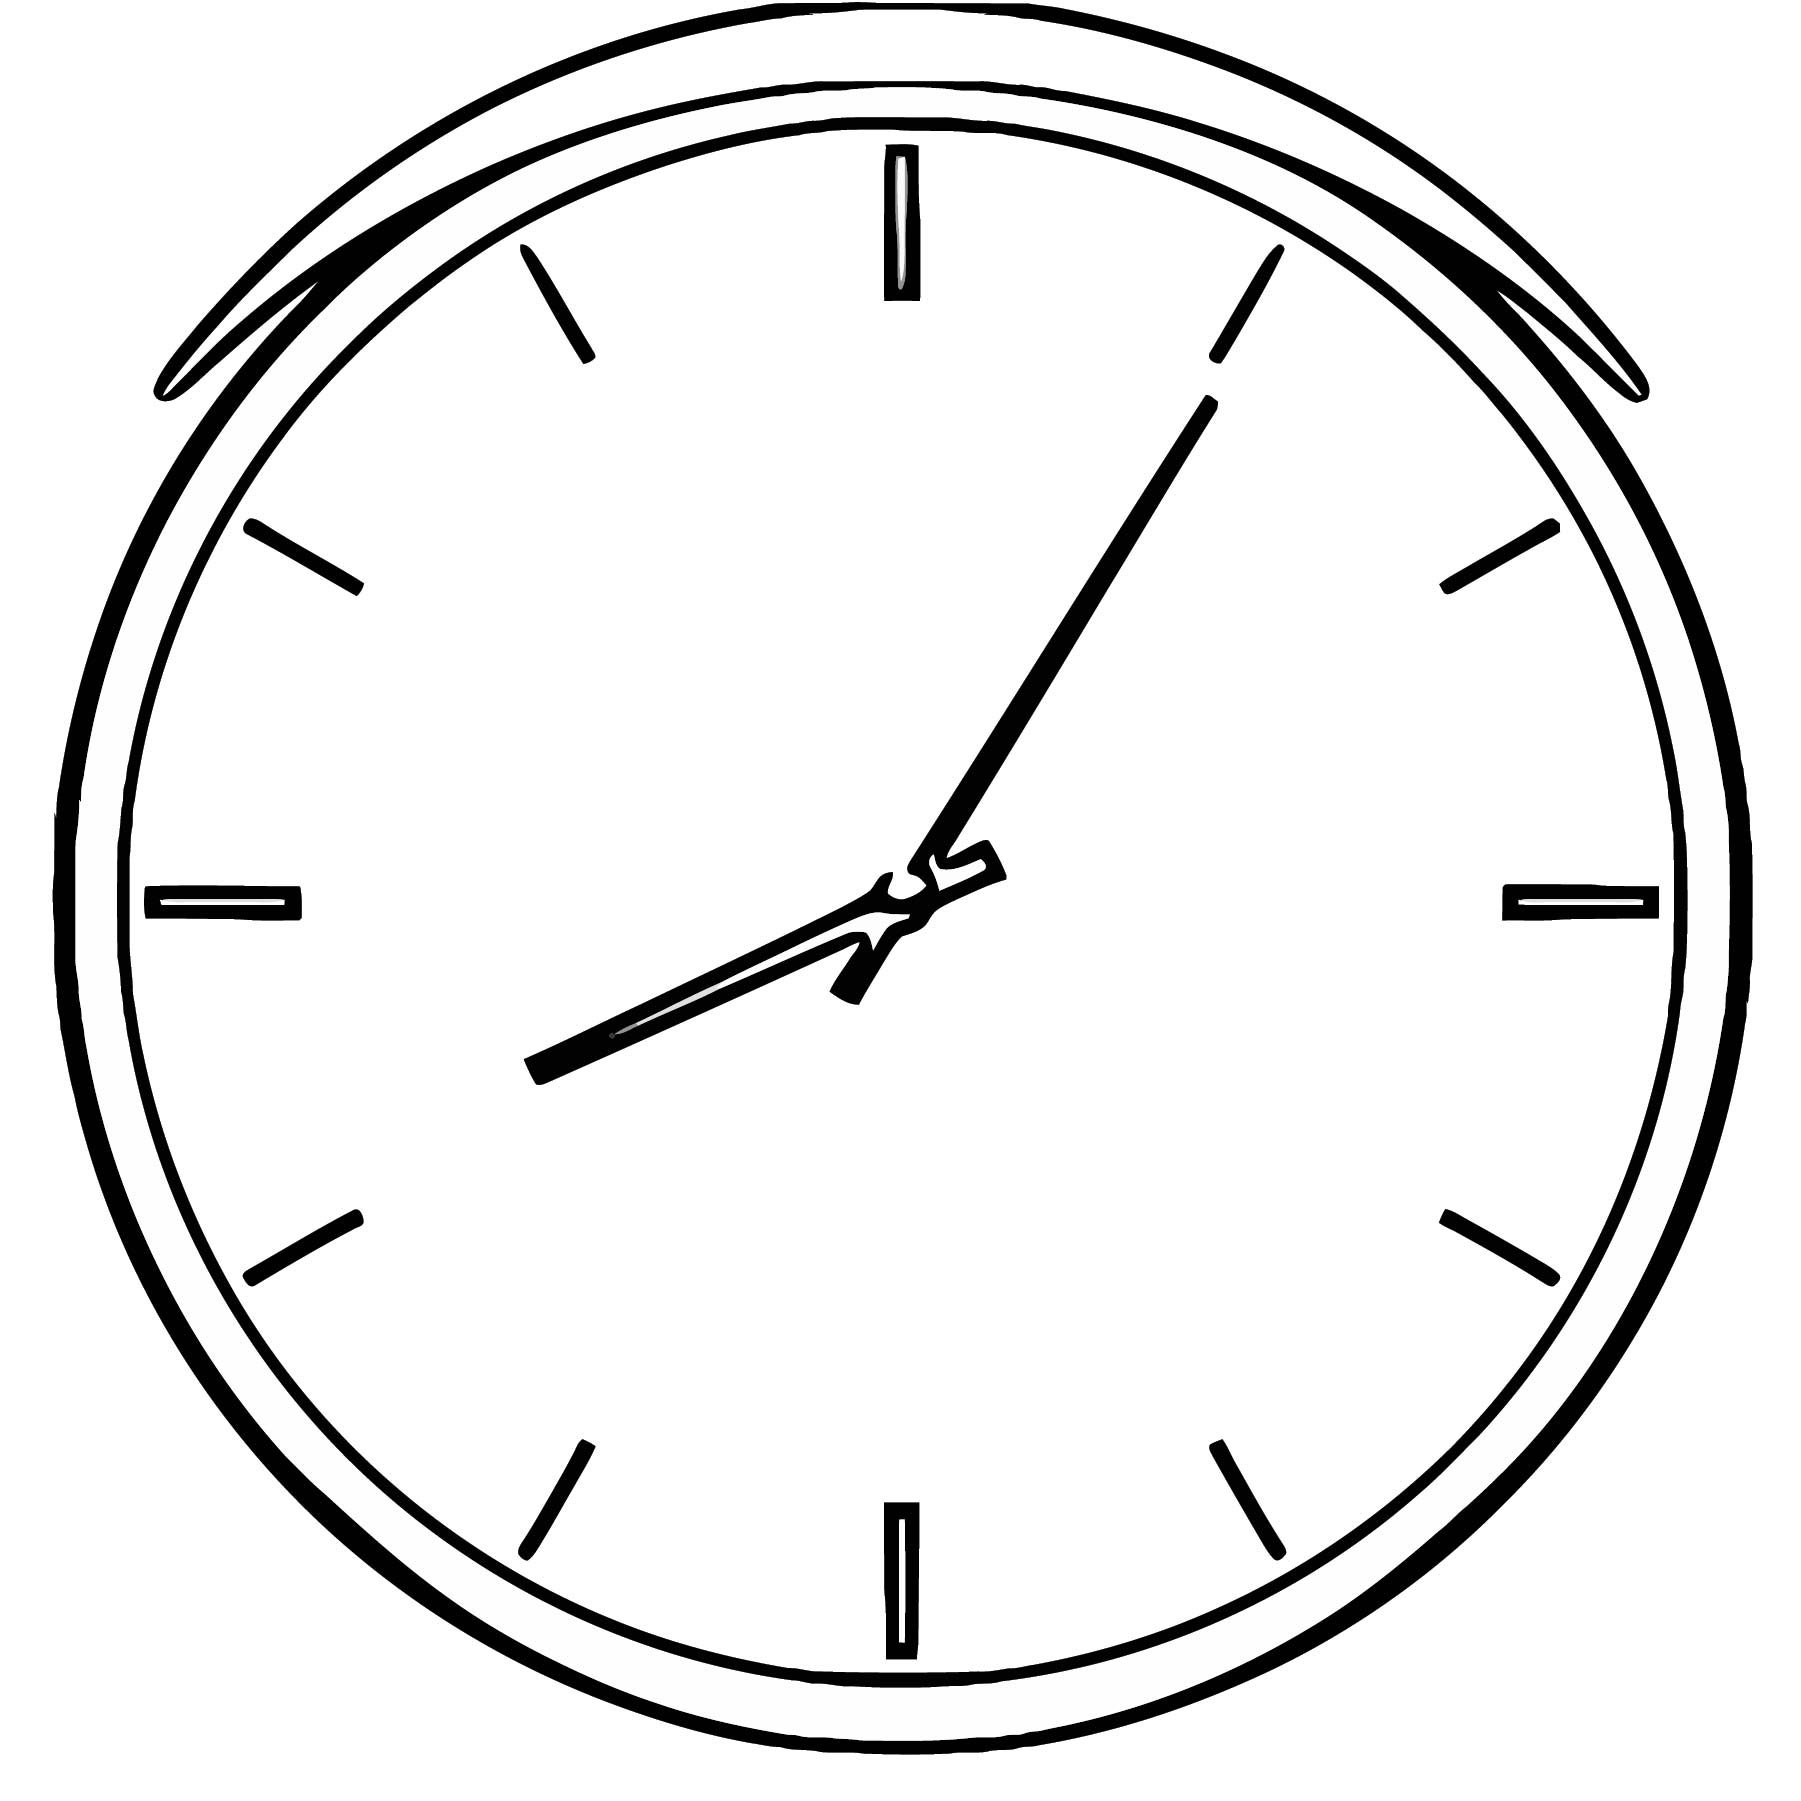 16762 Illustration Of A Clock Free Printable Pv Cartoonized Free Printable Coloring Page